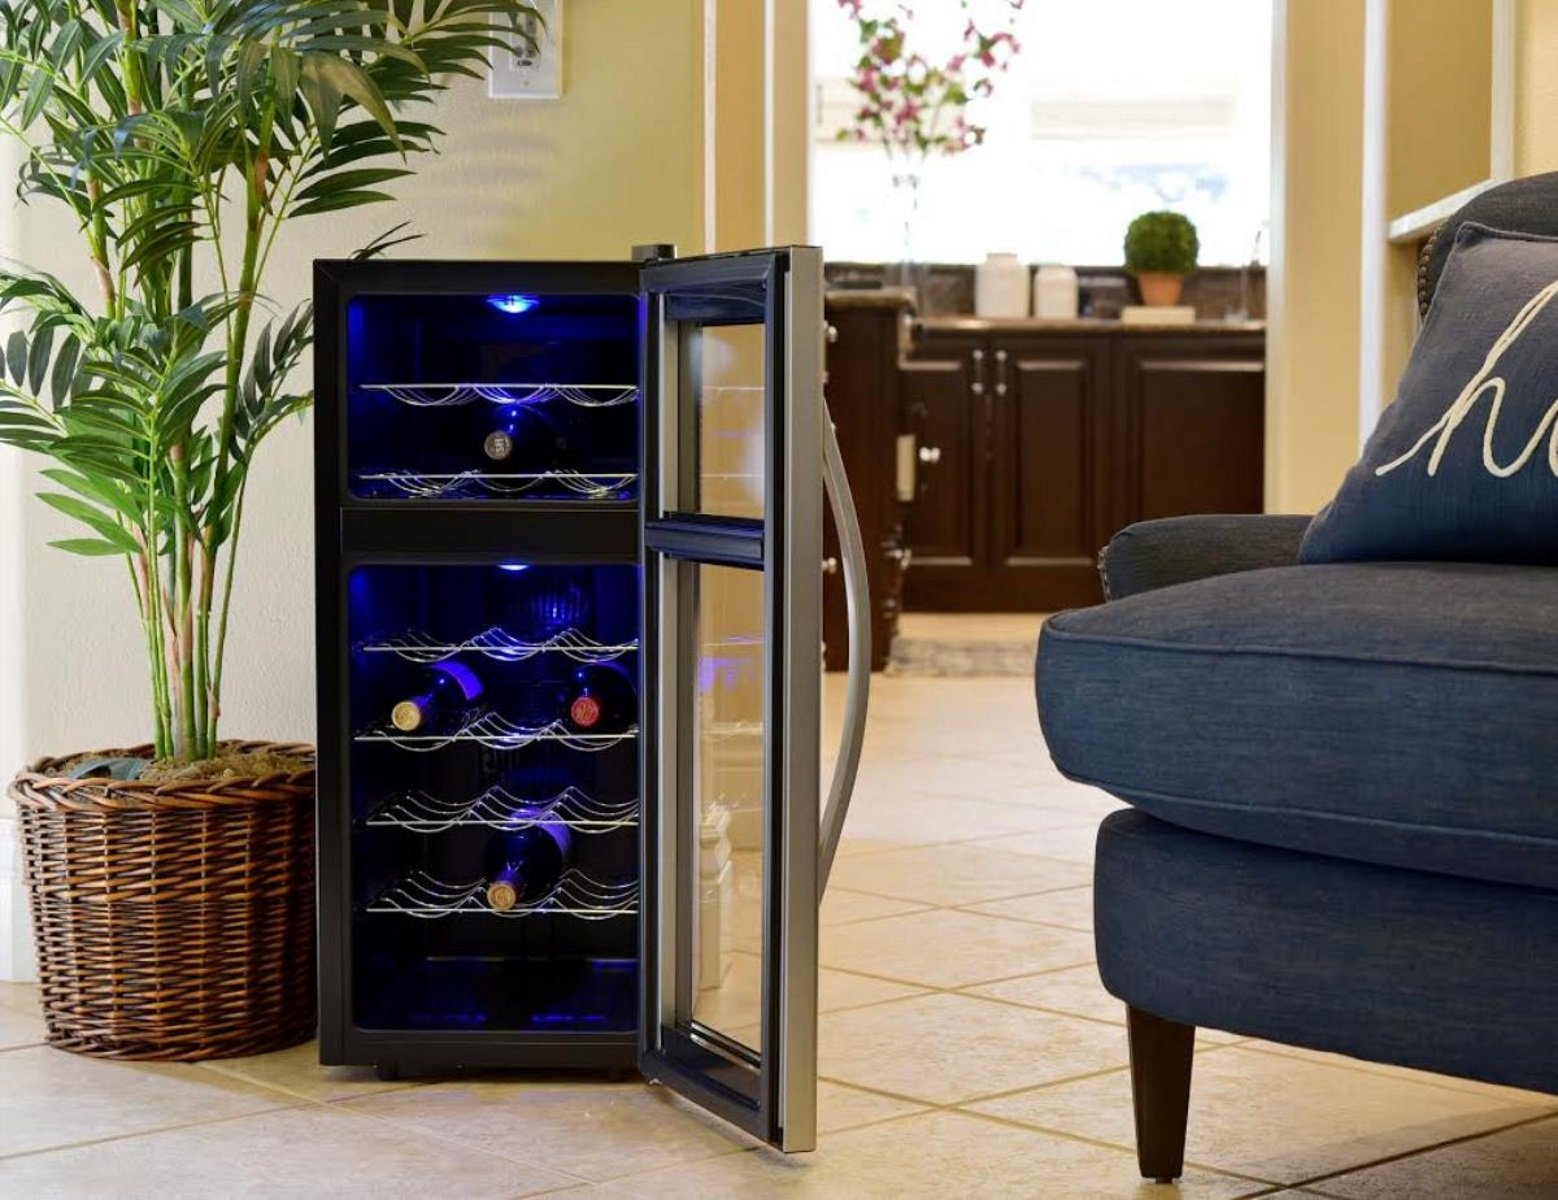 Avalon Bay AB-WINE21DS 21 Bottle Dual Zone Wine Cooler by Avalon Bay (Image #3)